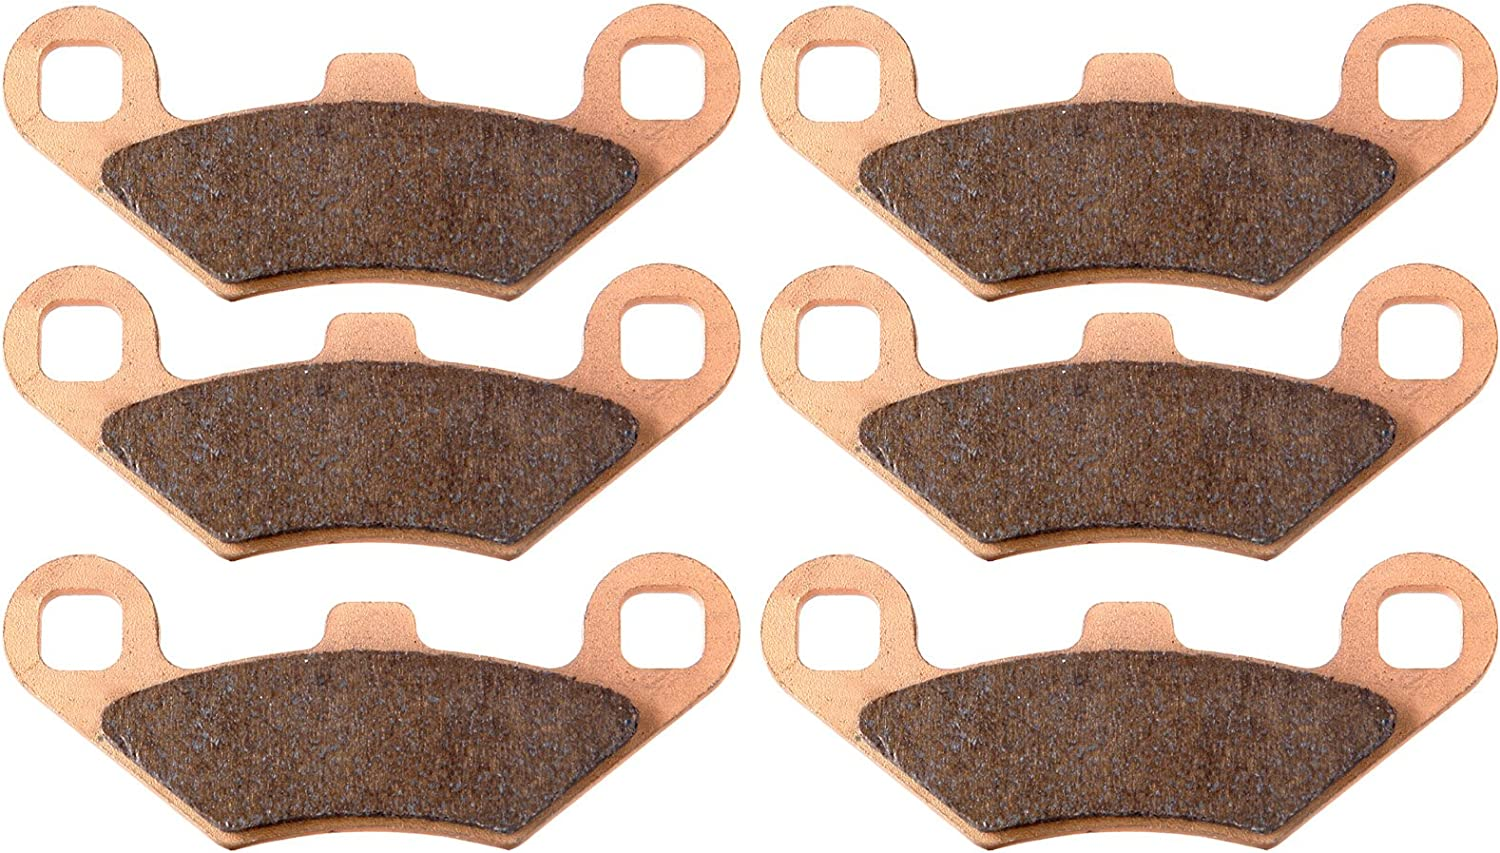 ECCPP FA159 Brake Pads Front Industry No. 1 Sintered Replacement Challenge the lowest price of Japan ☆ and Rear